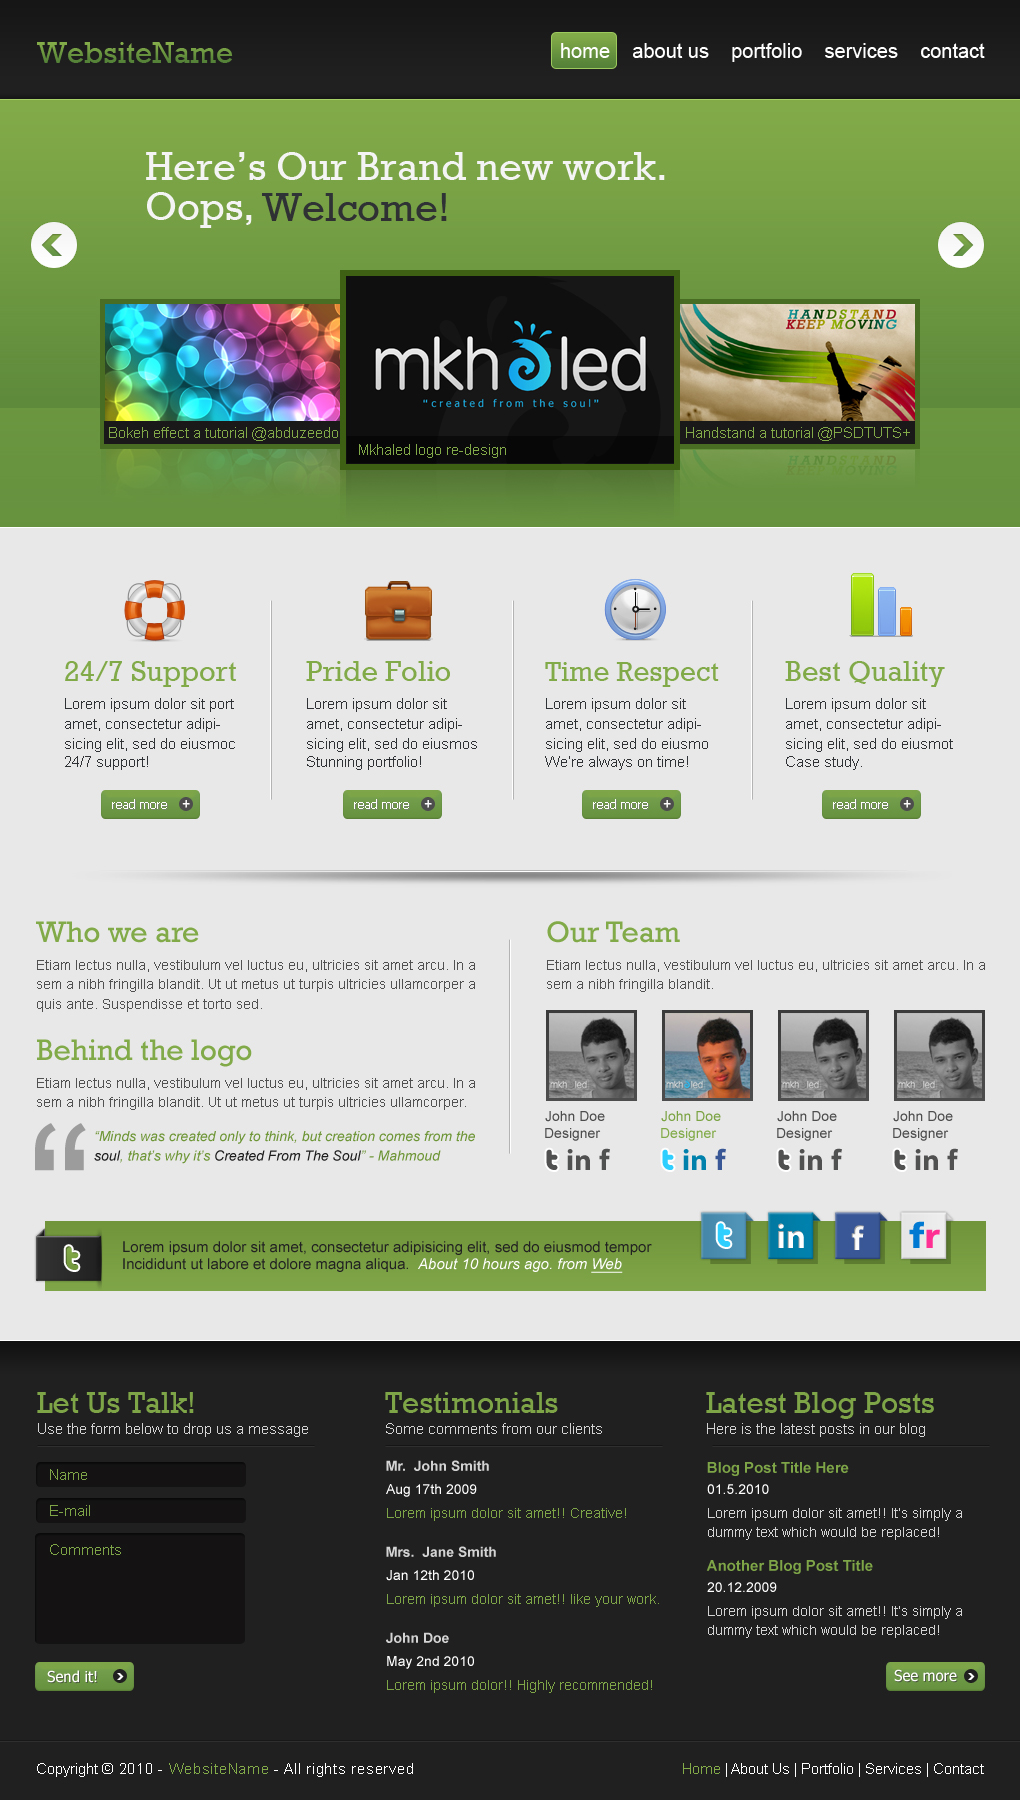 photoshop tutorials to create website layouts